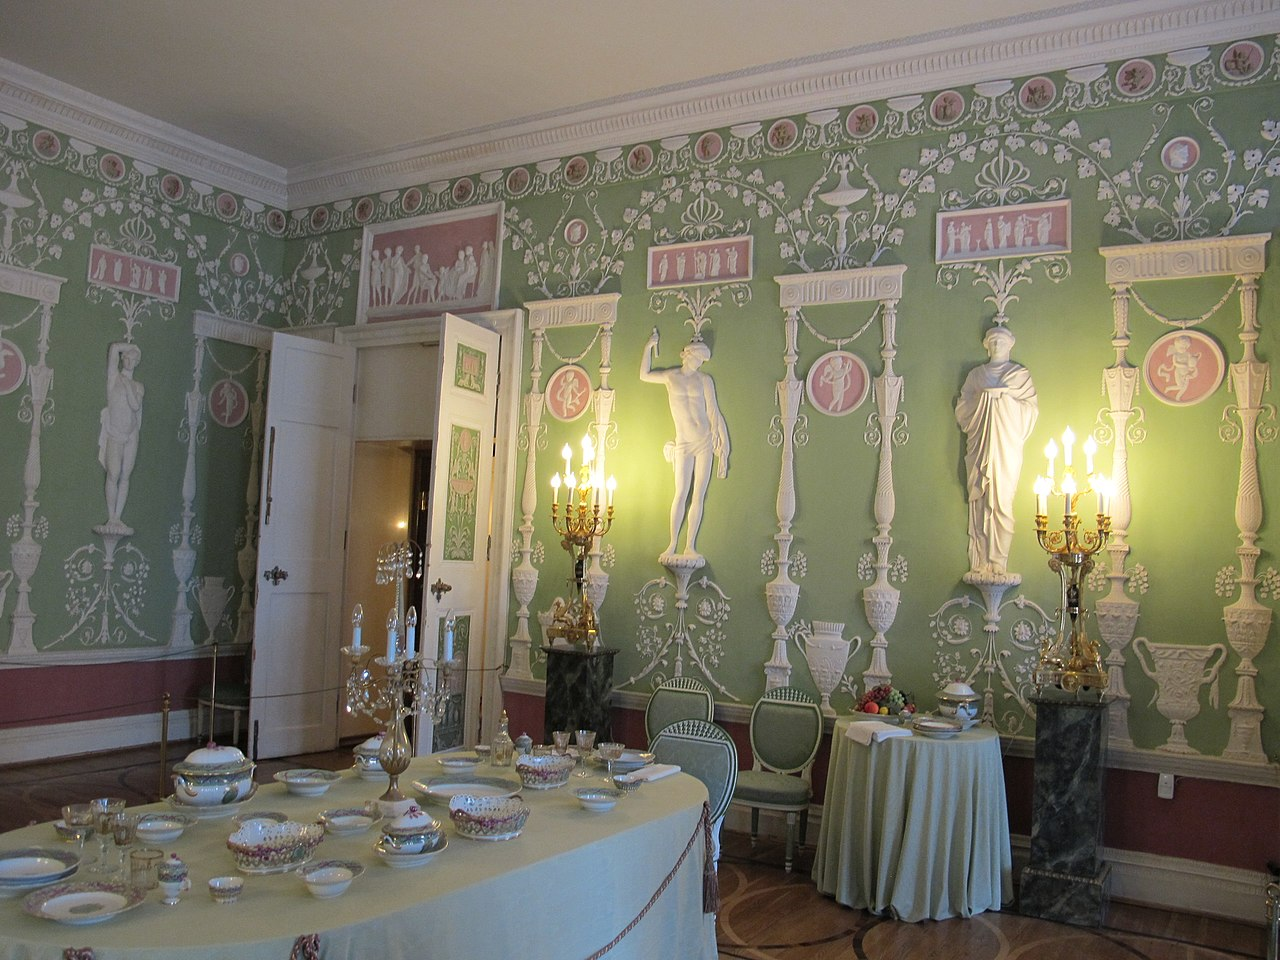 file:green dining room of the catherine palace 04 - wikimedia